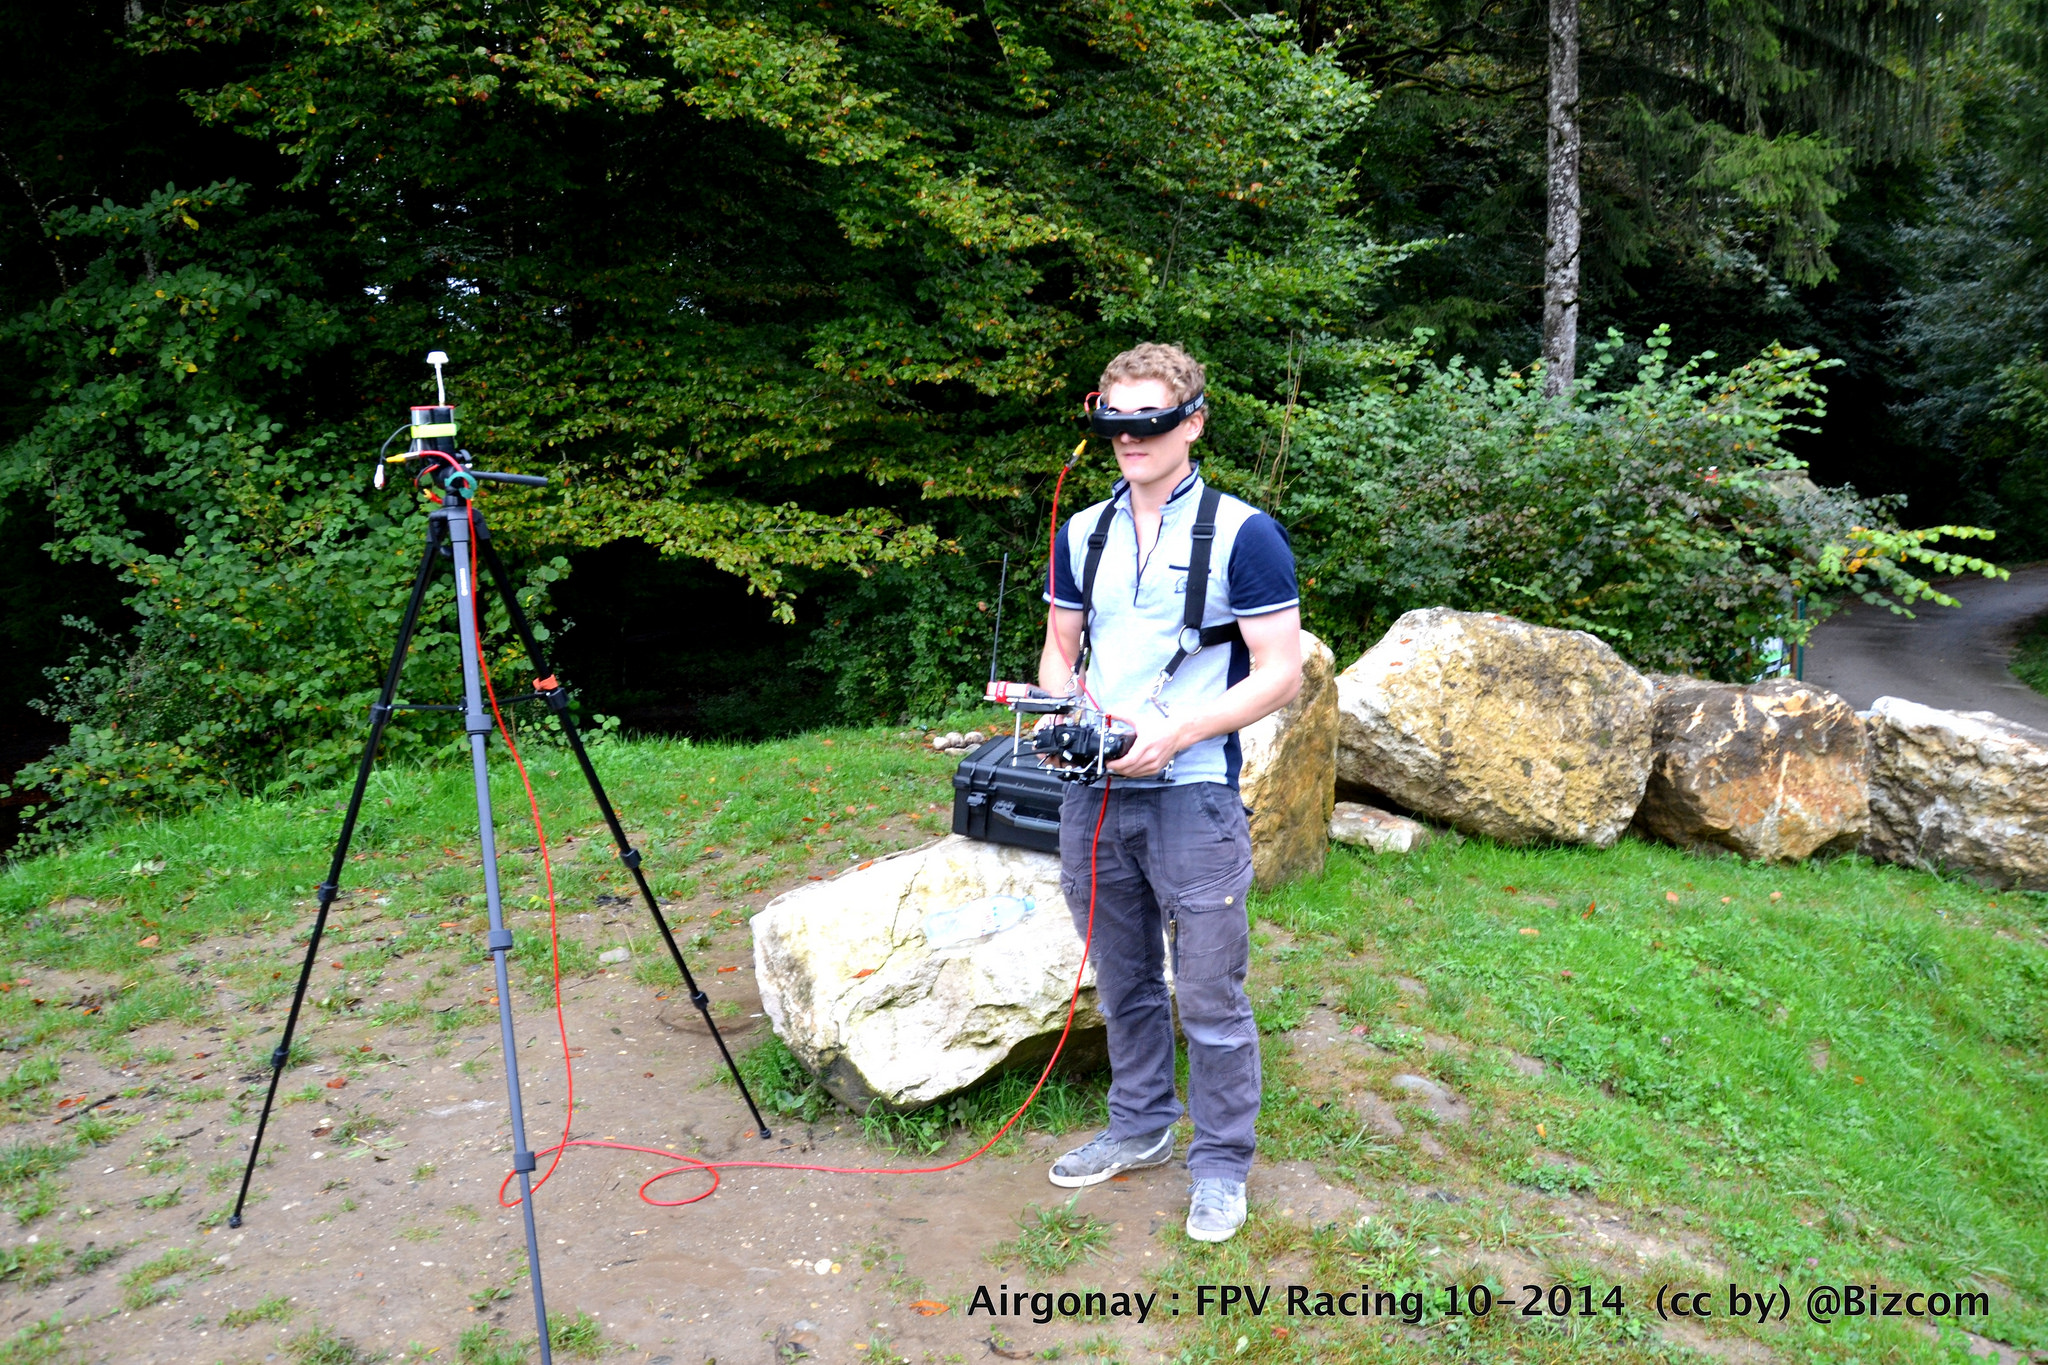 AIRGONAY-10-10-2014-0557, @BIZCOM Arnaud VELTEN October 10, 2014